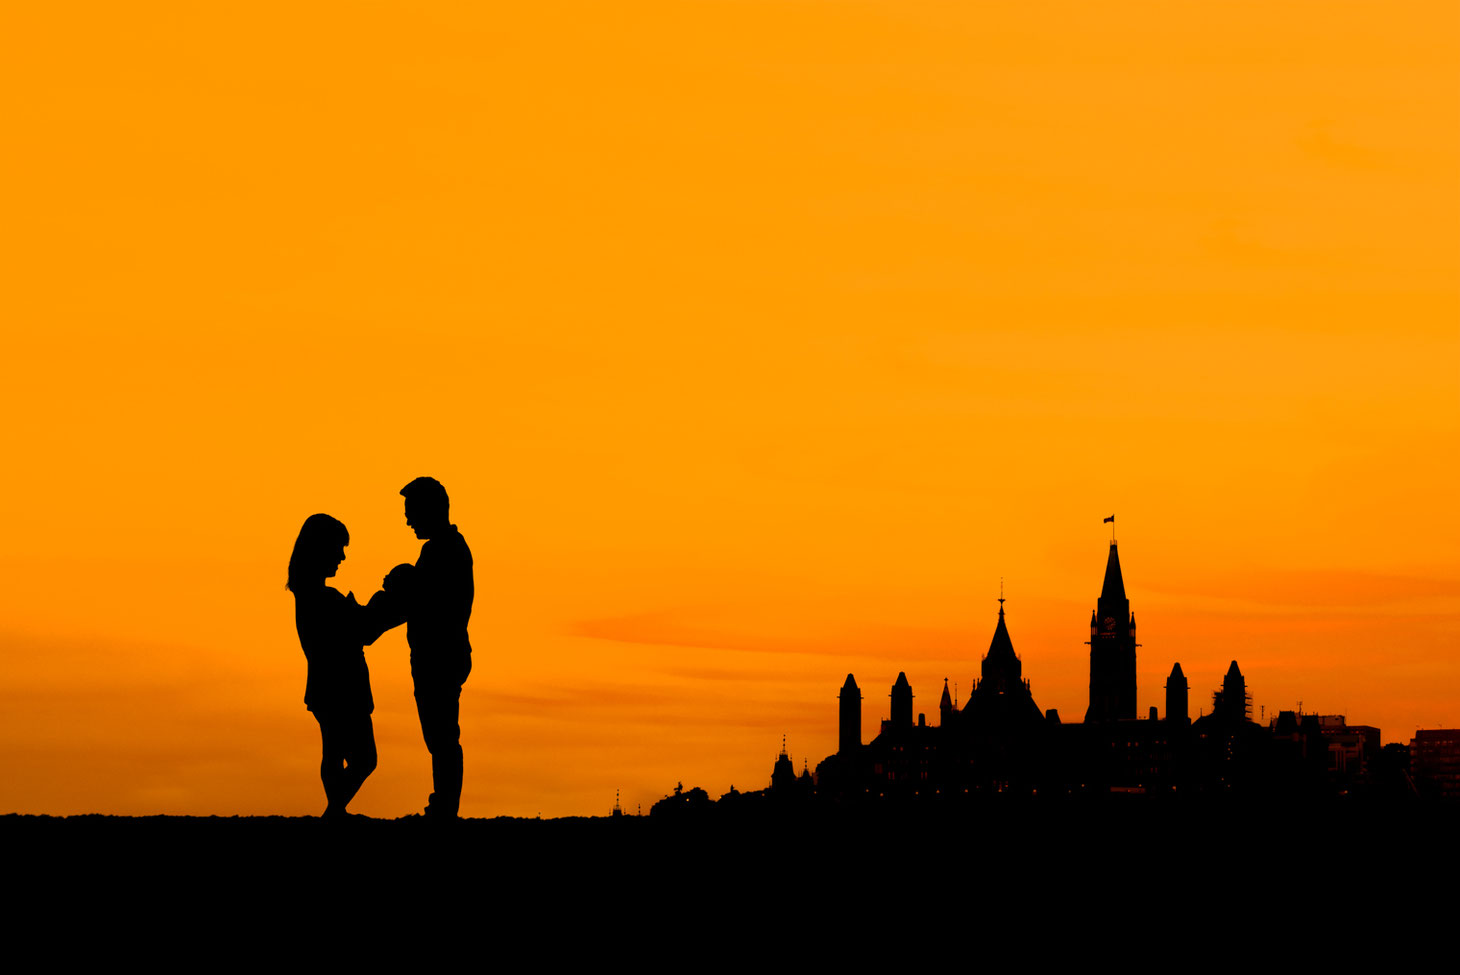 silhouette of mother, new baby, and father next to a silhouette of parliament hill in Ottawa Ontario. Sky is orange with a small amount of clouds.